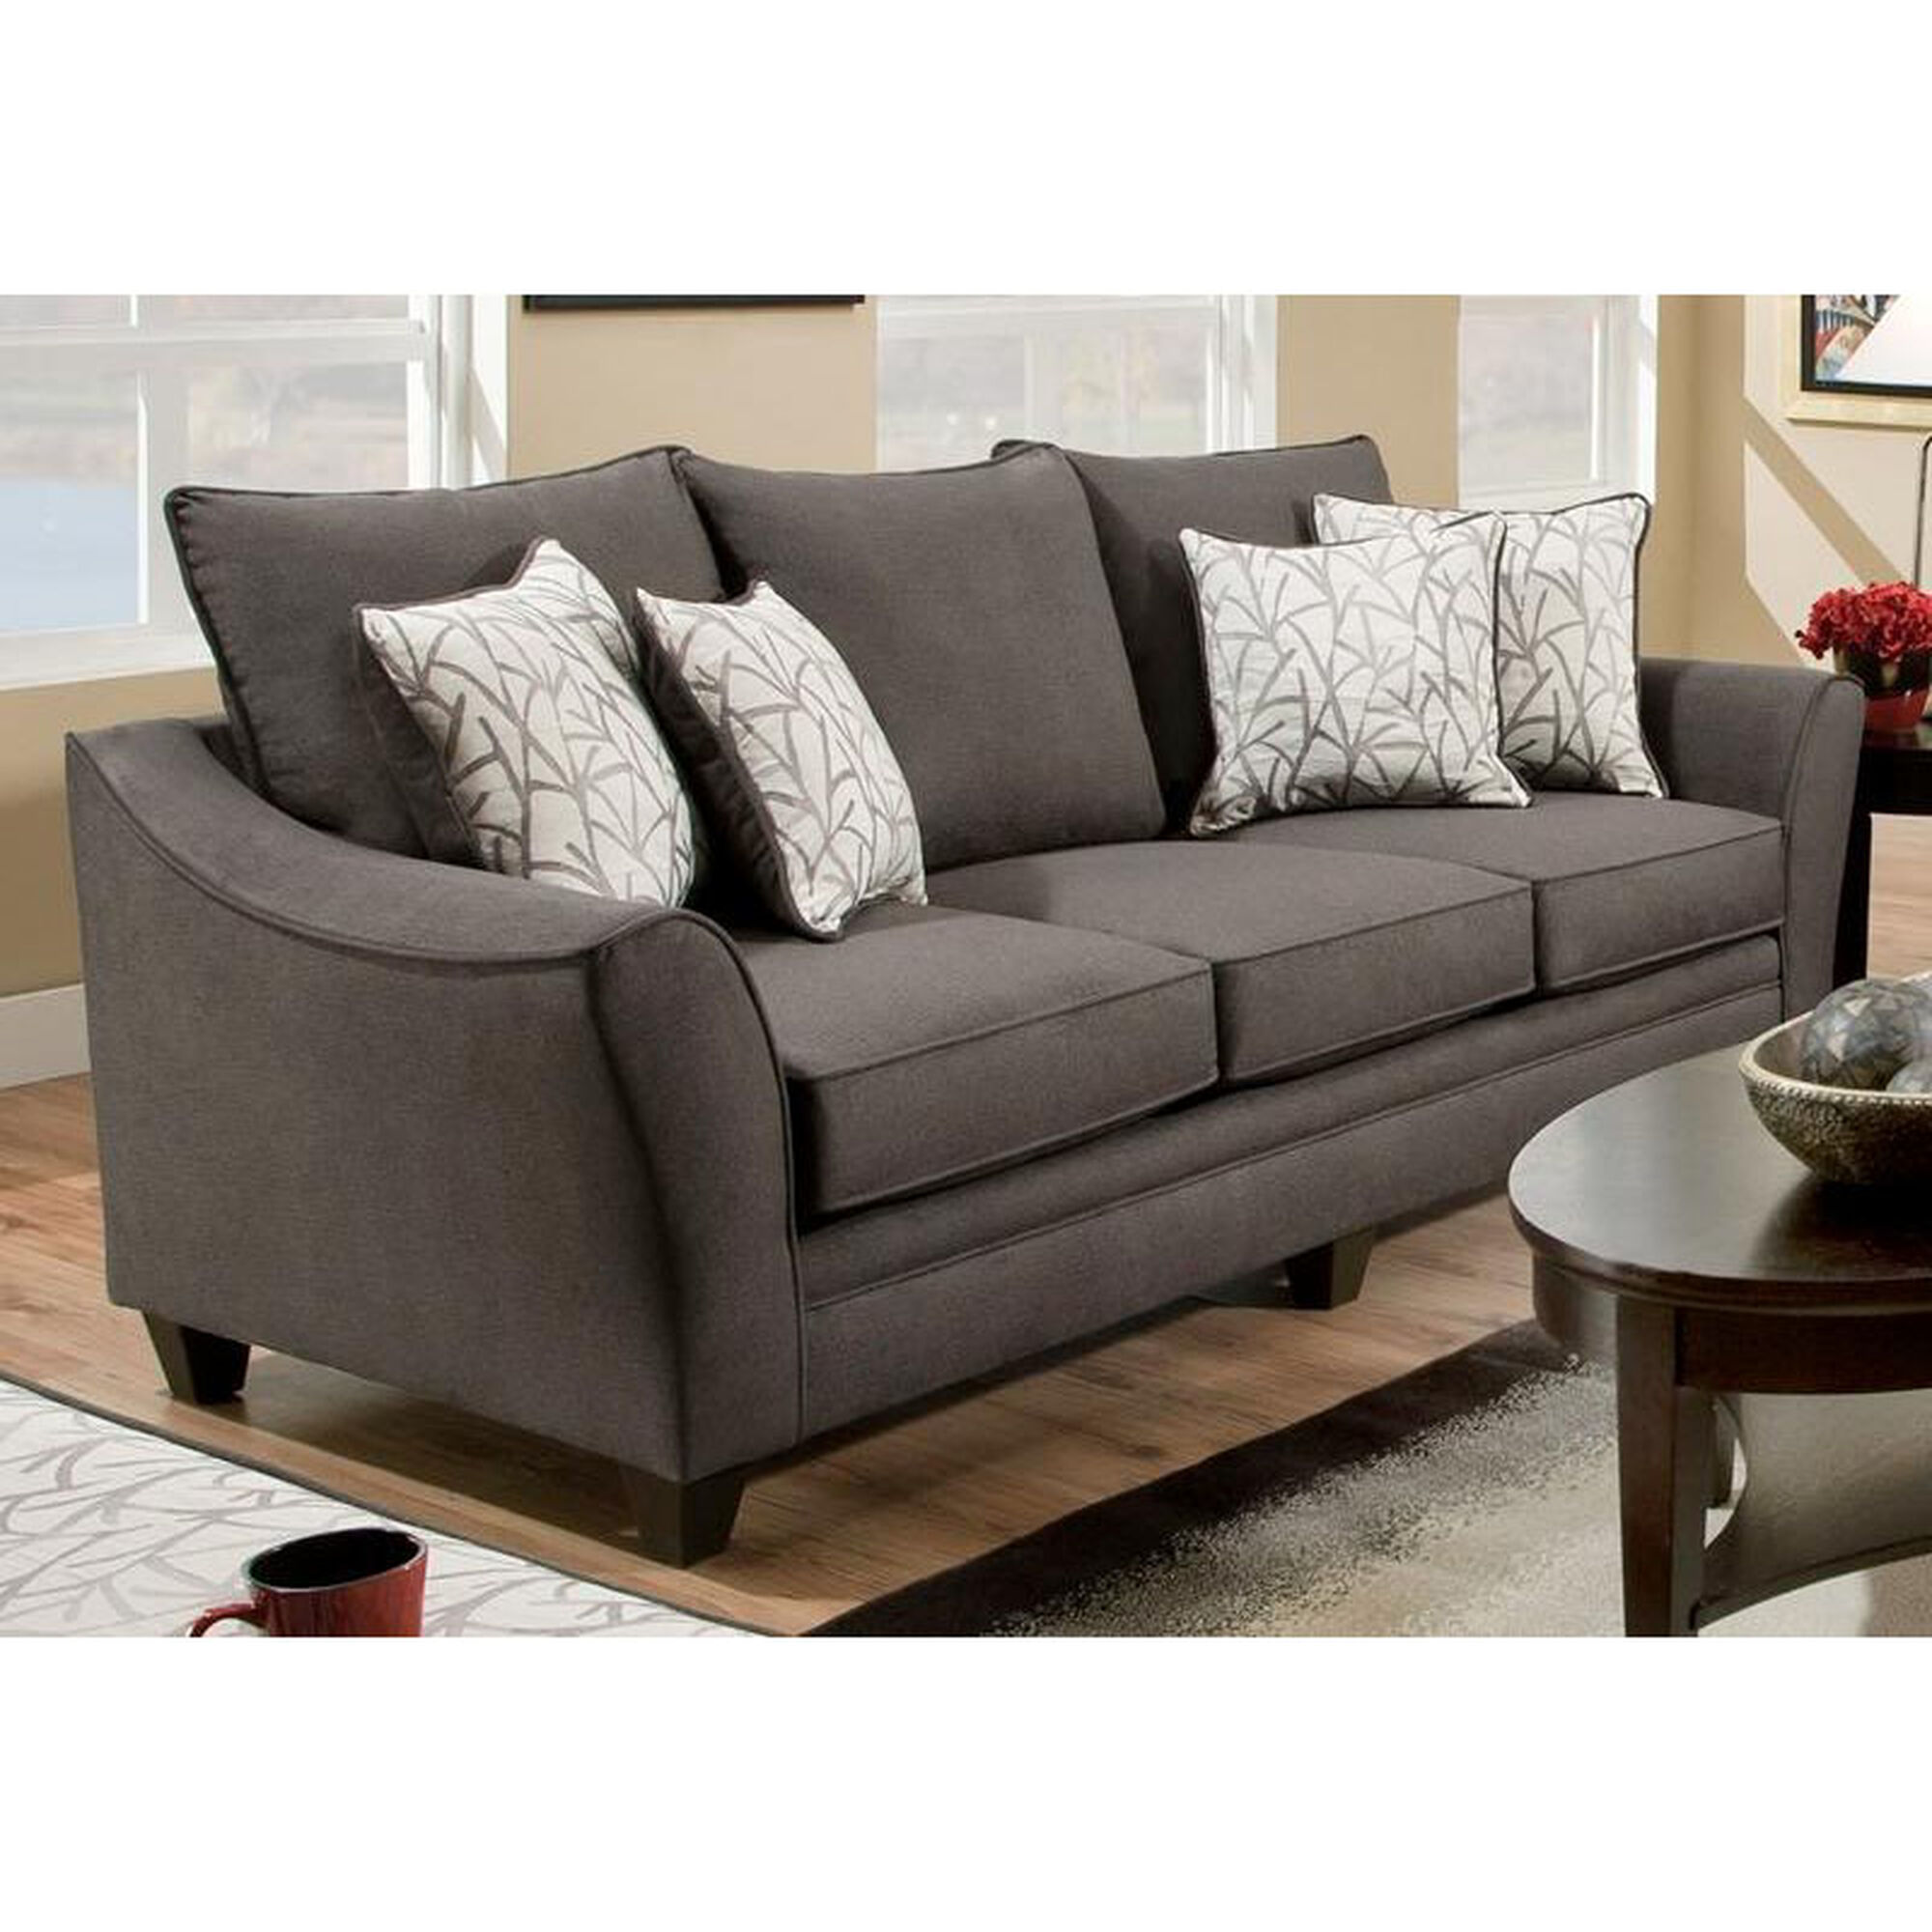 Sofa flannel seal 183853 4040 for Home furniture sites